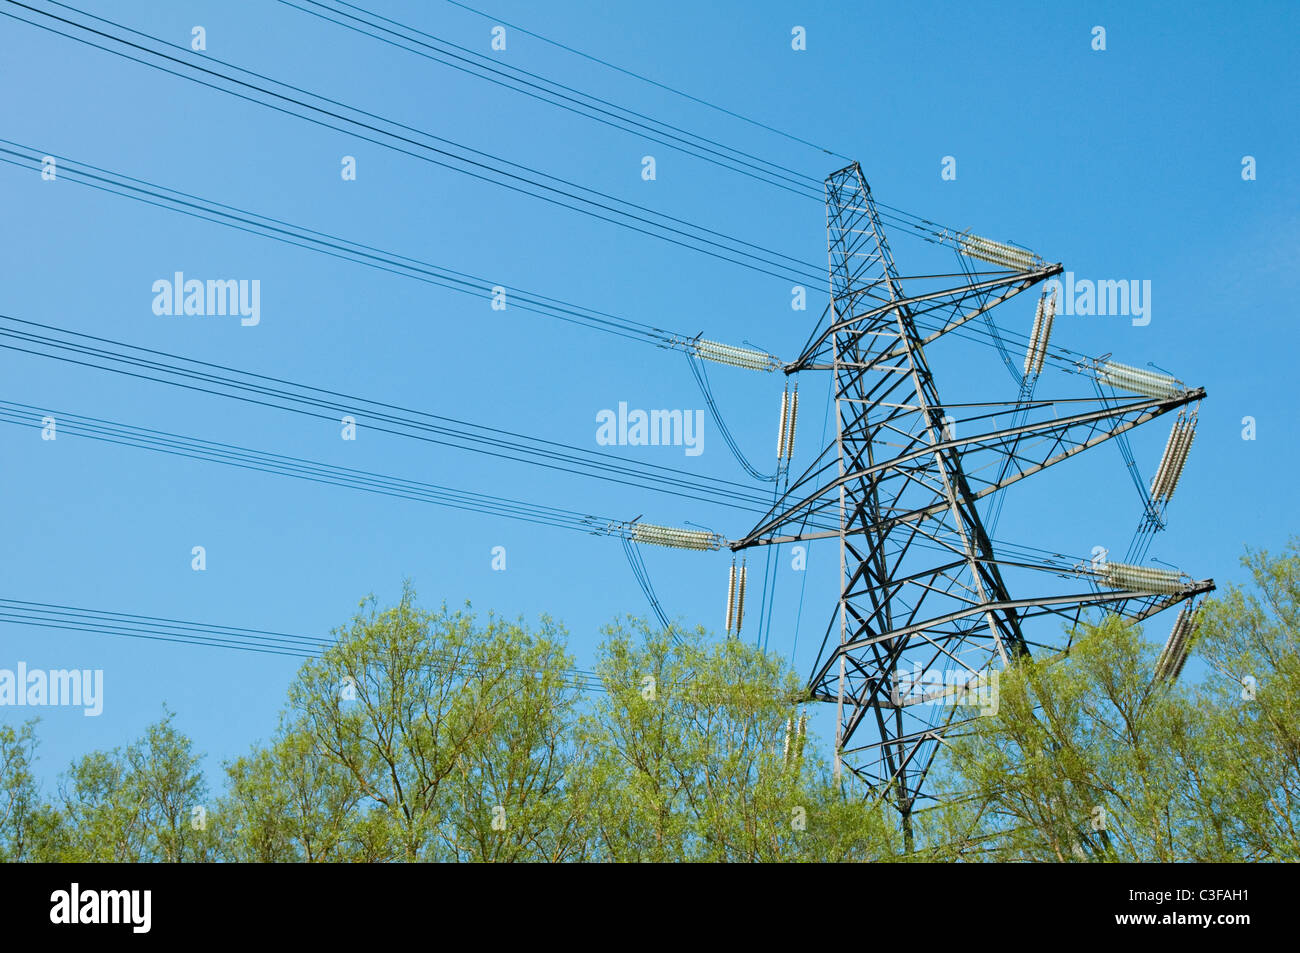 Electricity Pylon with Willow Trees below - against a blue sky. UK - Stock Image